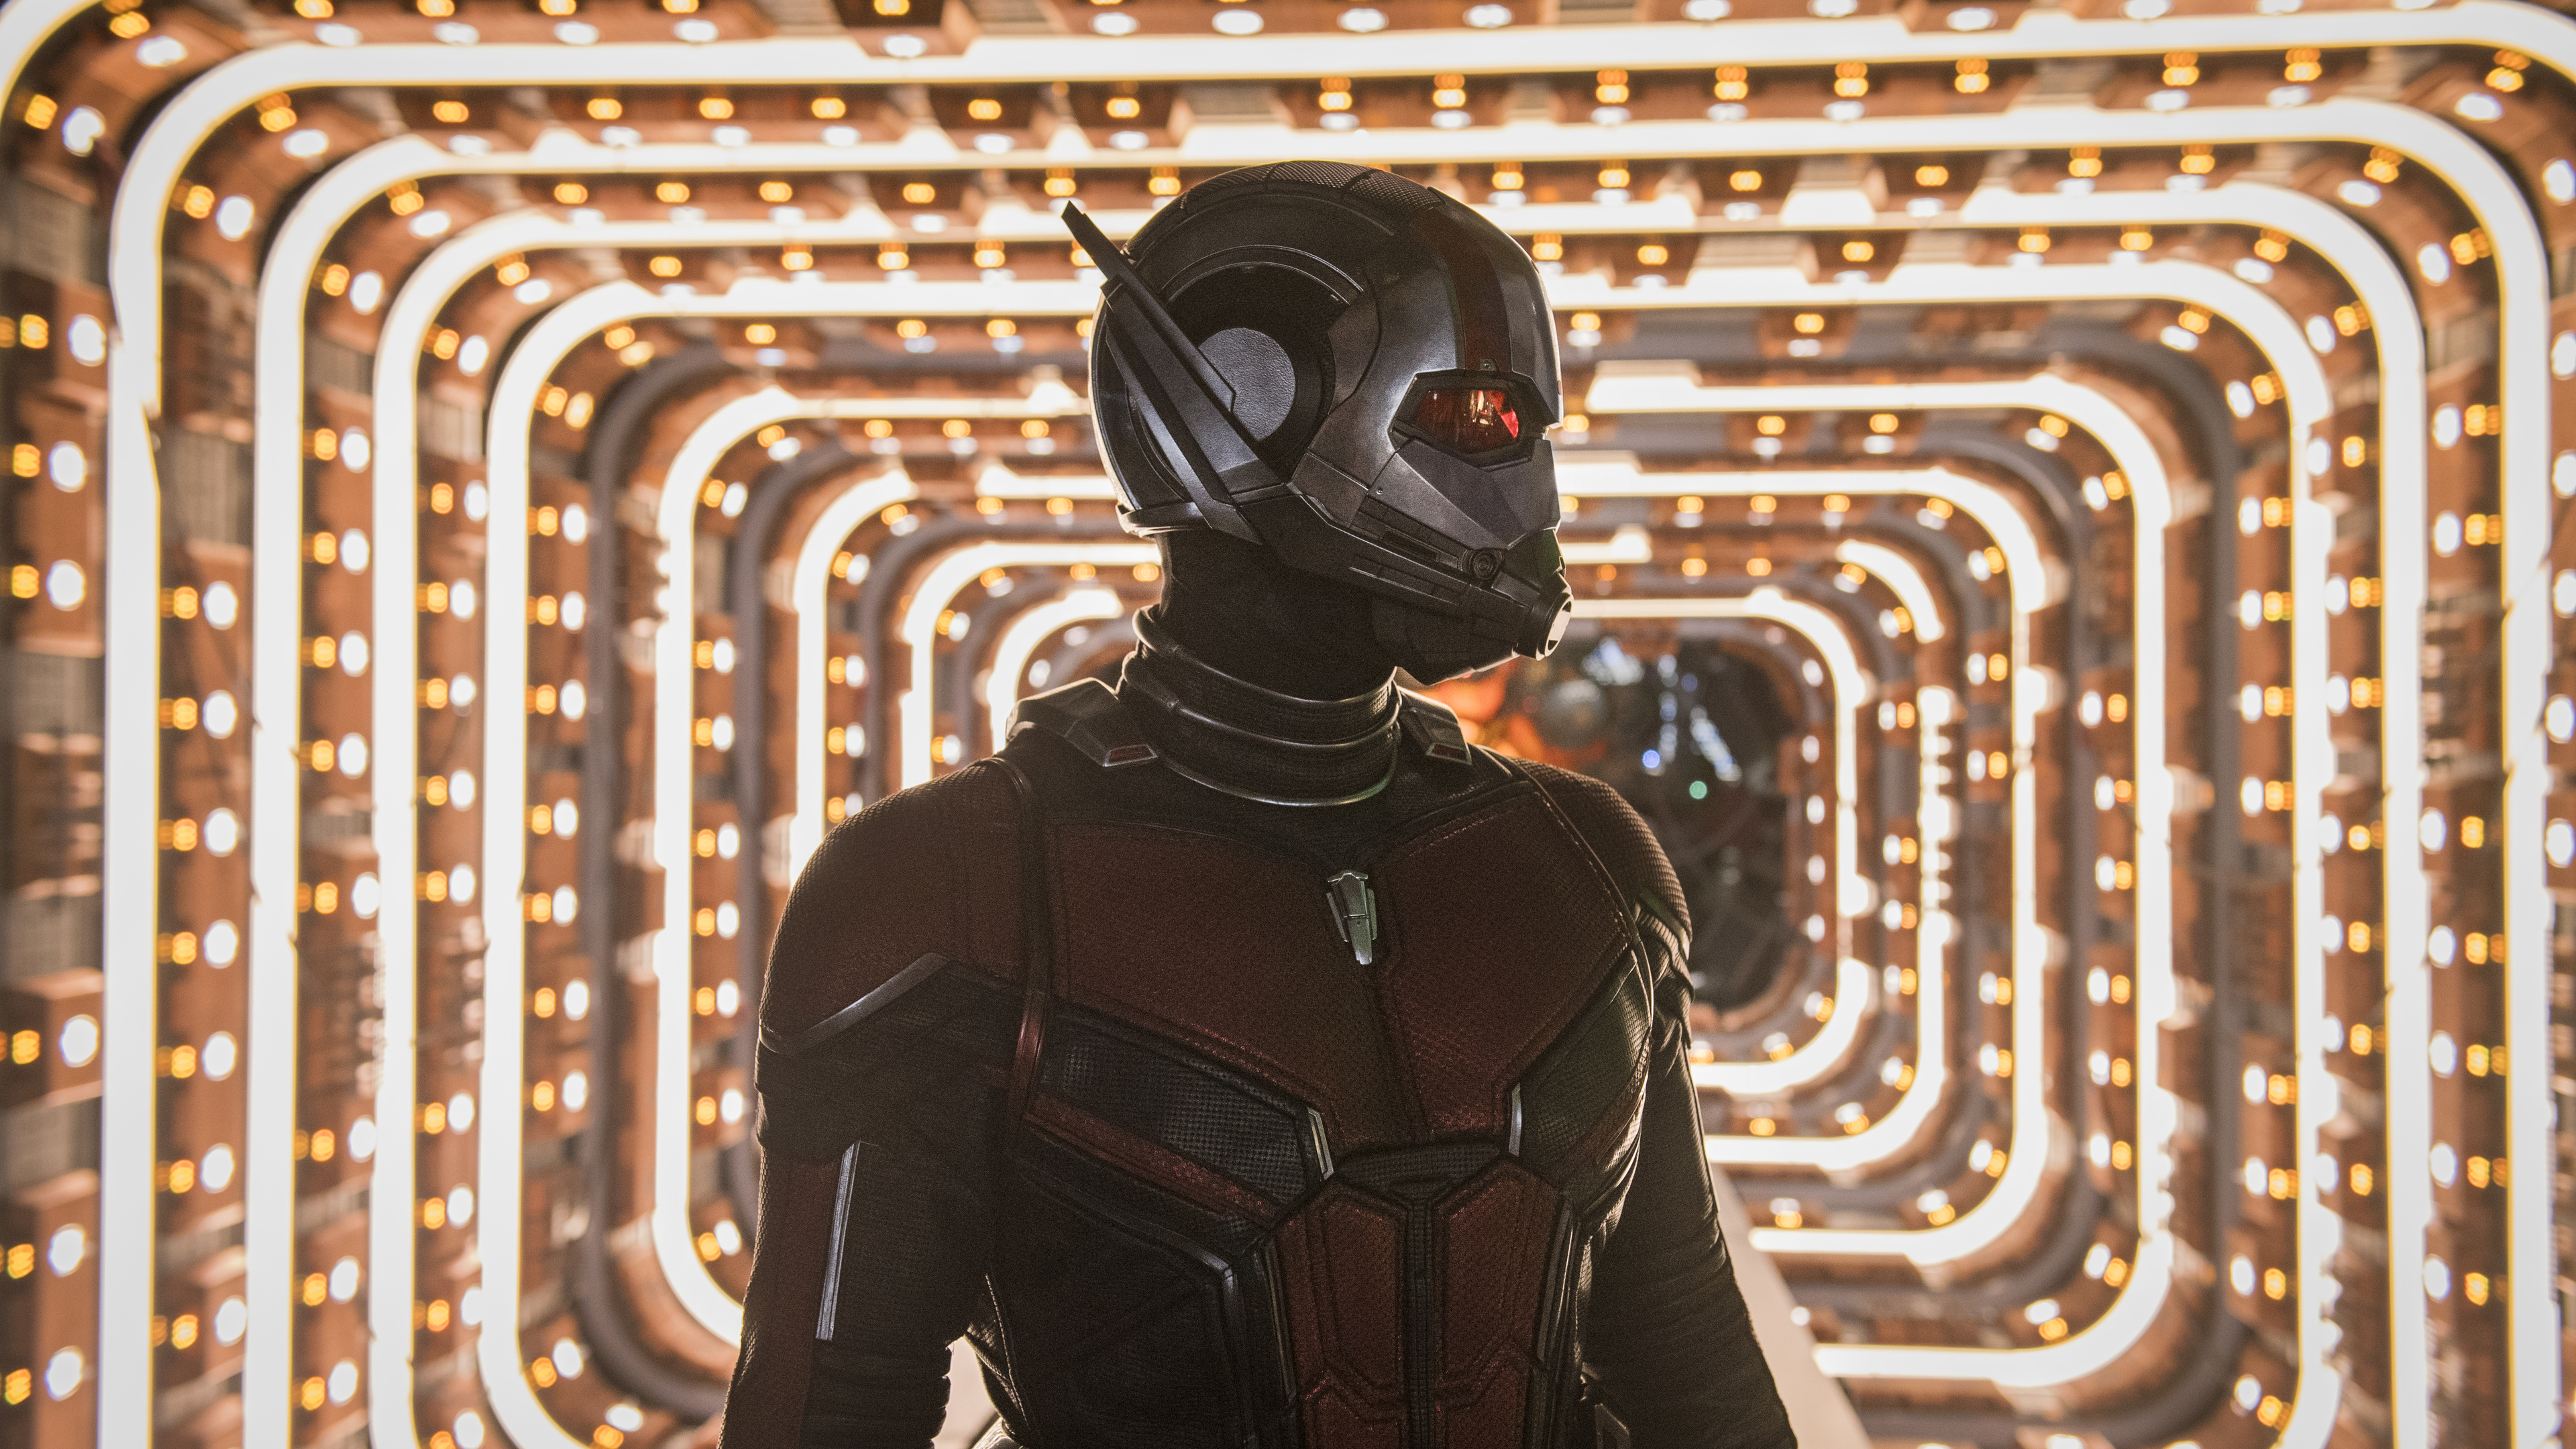 ant man and the wasp movie 5k 1537645092 - Ant Man And The Wasp Movie 5k - movies wallpapers, hd-wallpapers, ant man wallpapers, ant man and the wasp wallpapers, 5k wallpapers, 4k-wallpapers, 2018-movies-wallpapers